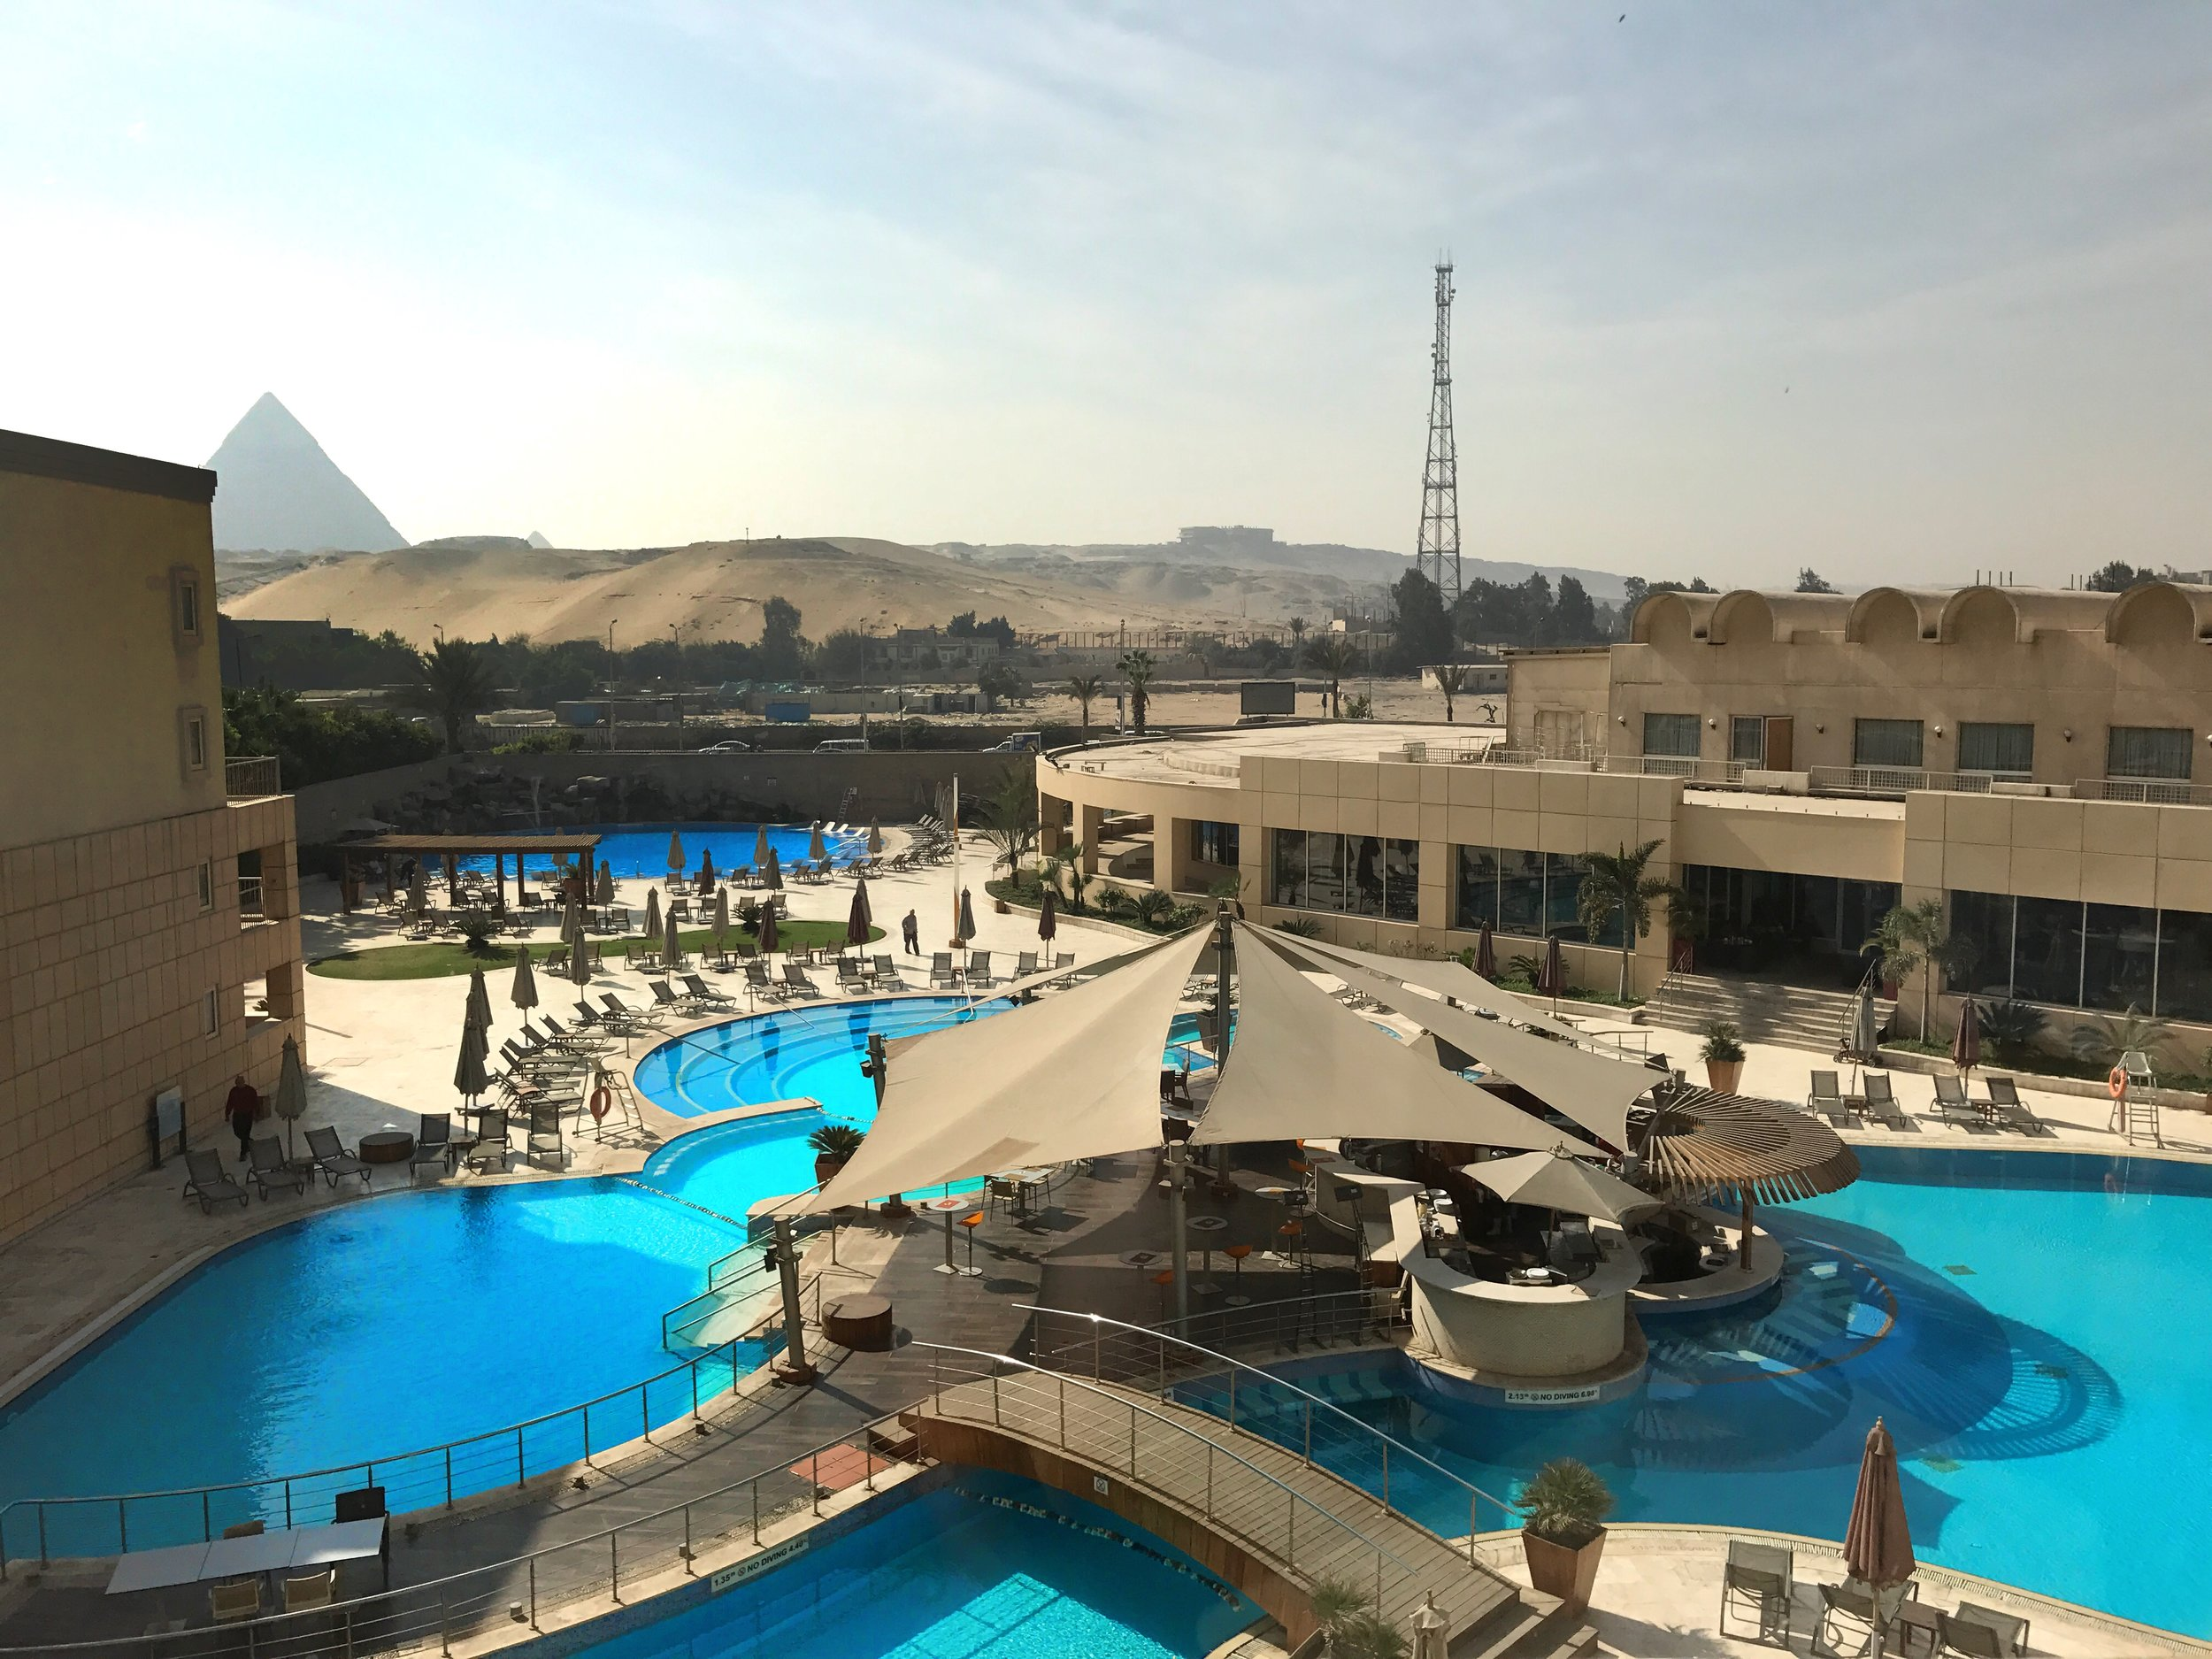 The view from my room at Le Meridien Pyramids Hotel